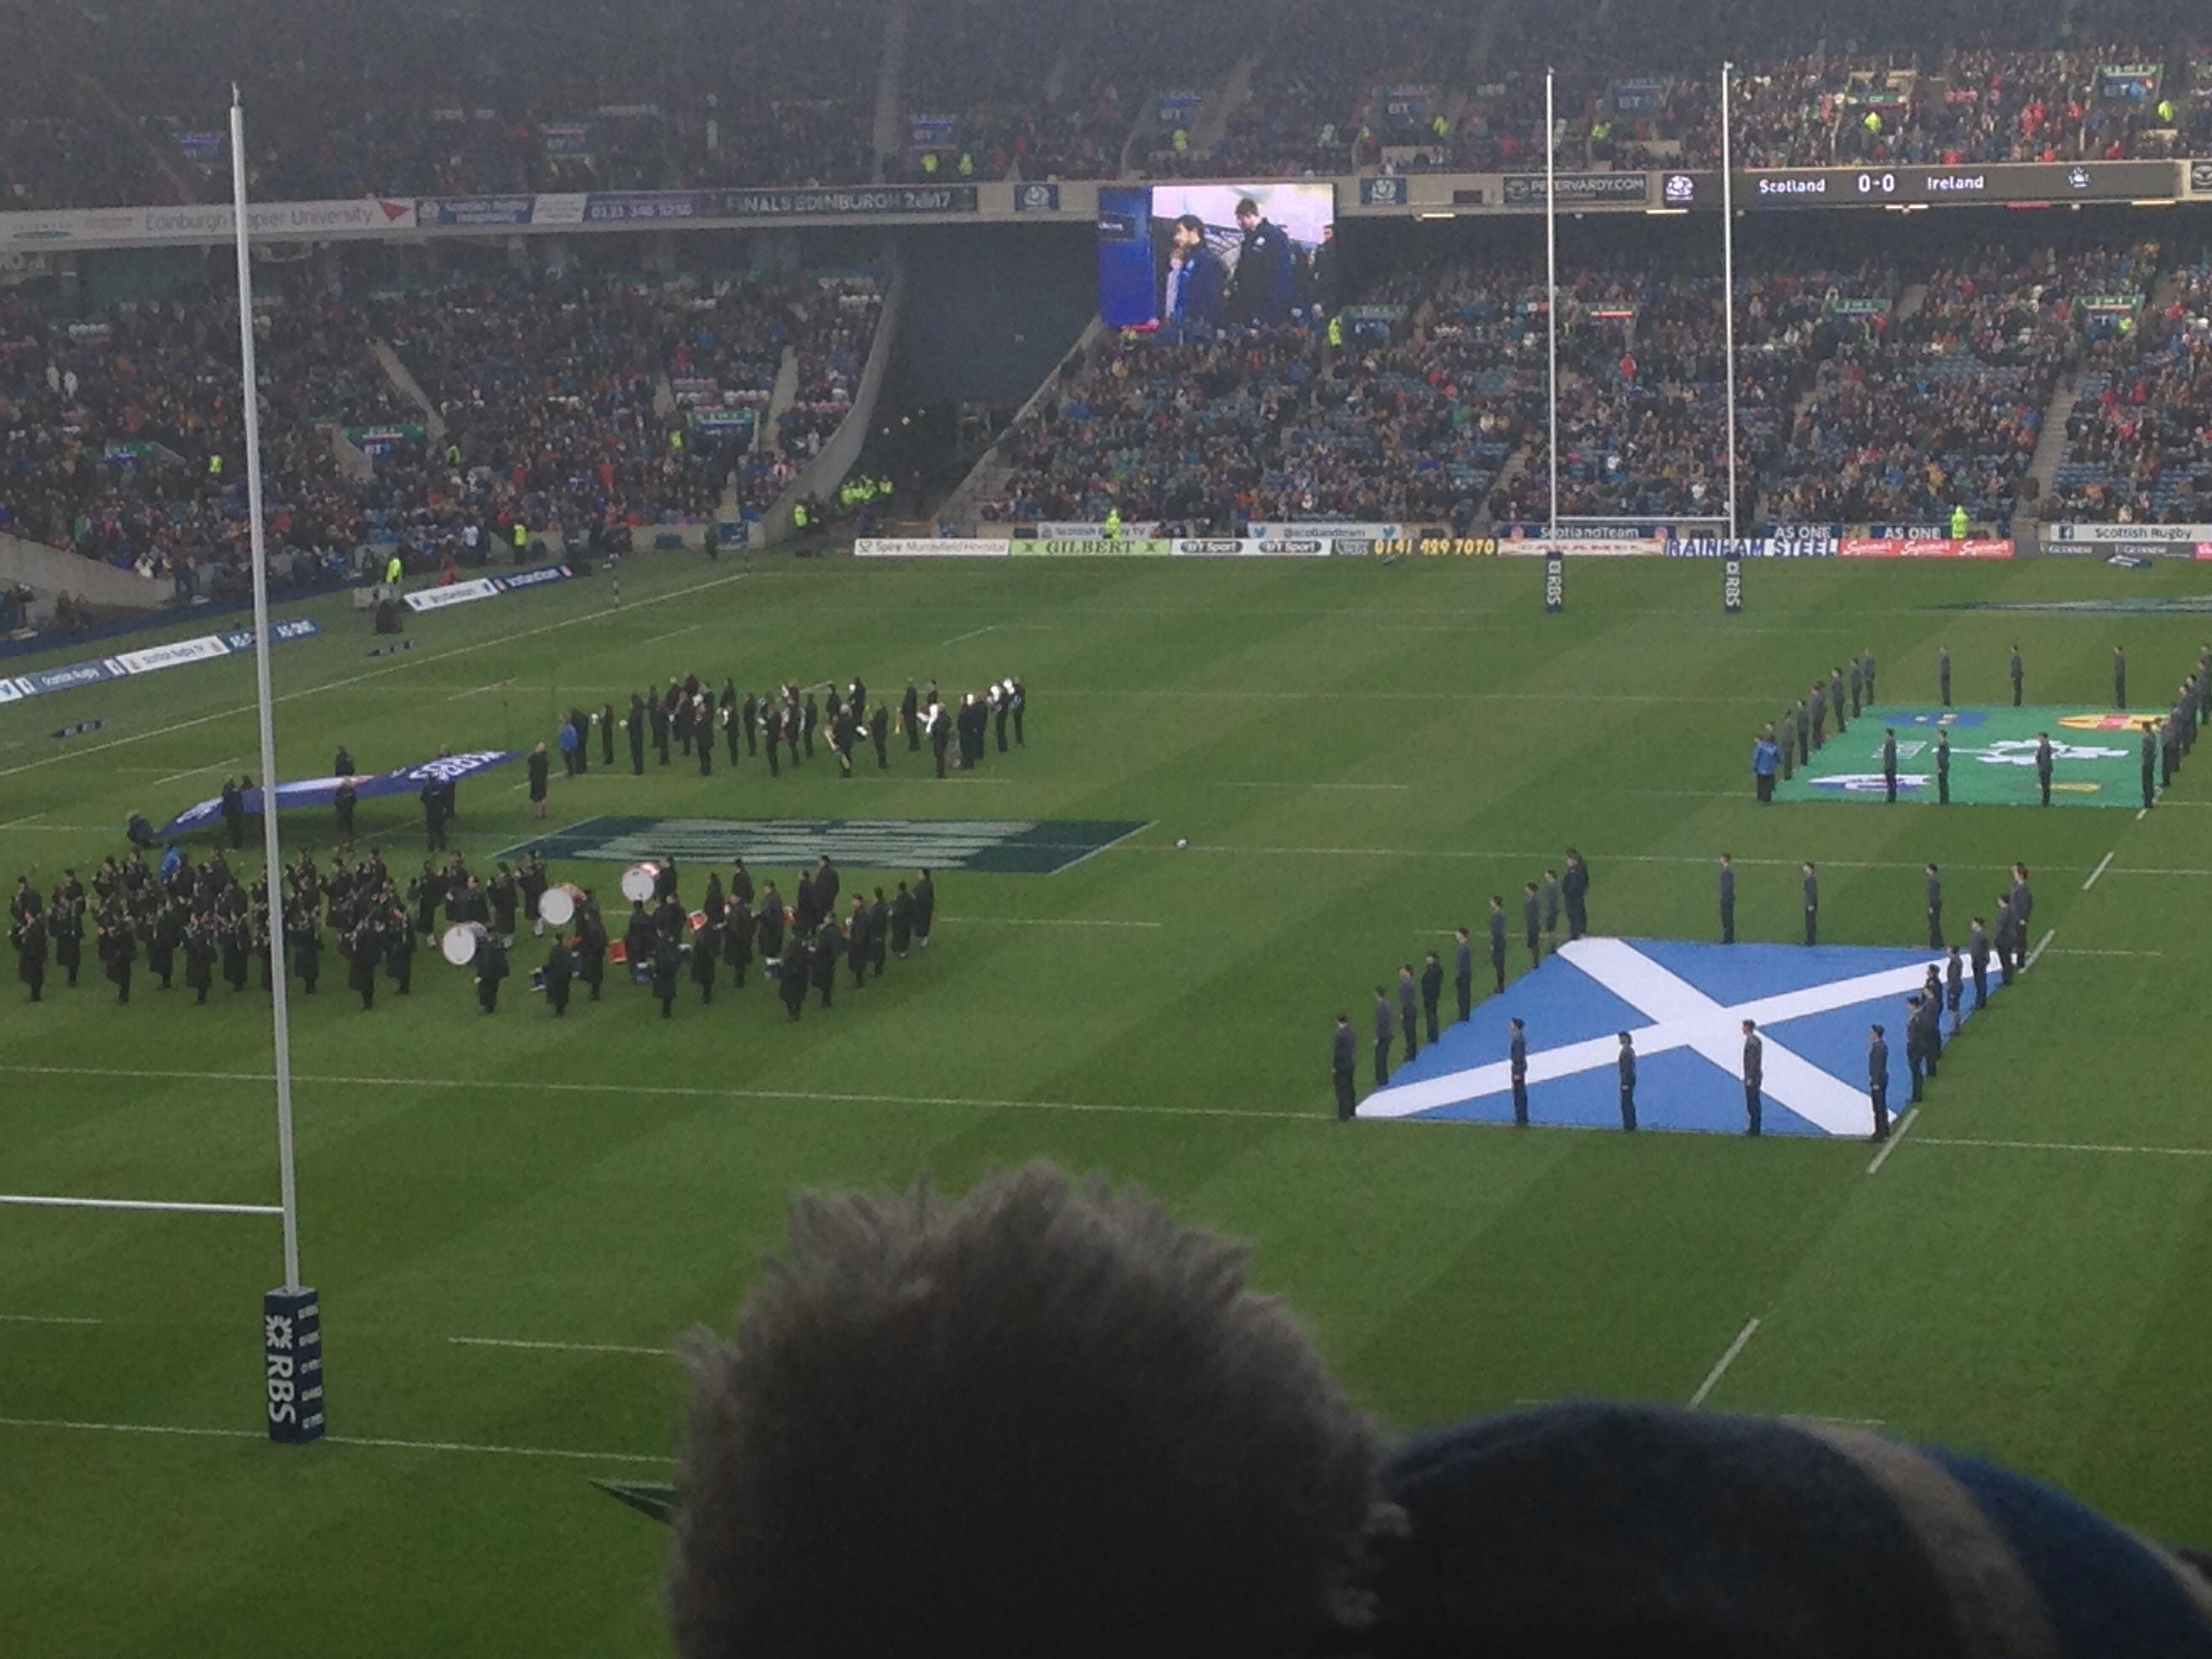 Murrayfield Stadium Section South 8 Row X Seat 4